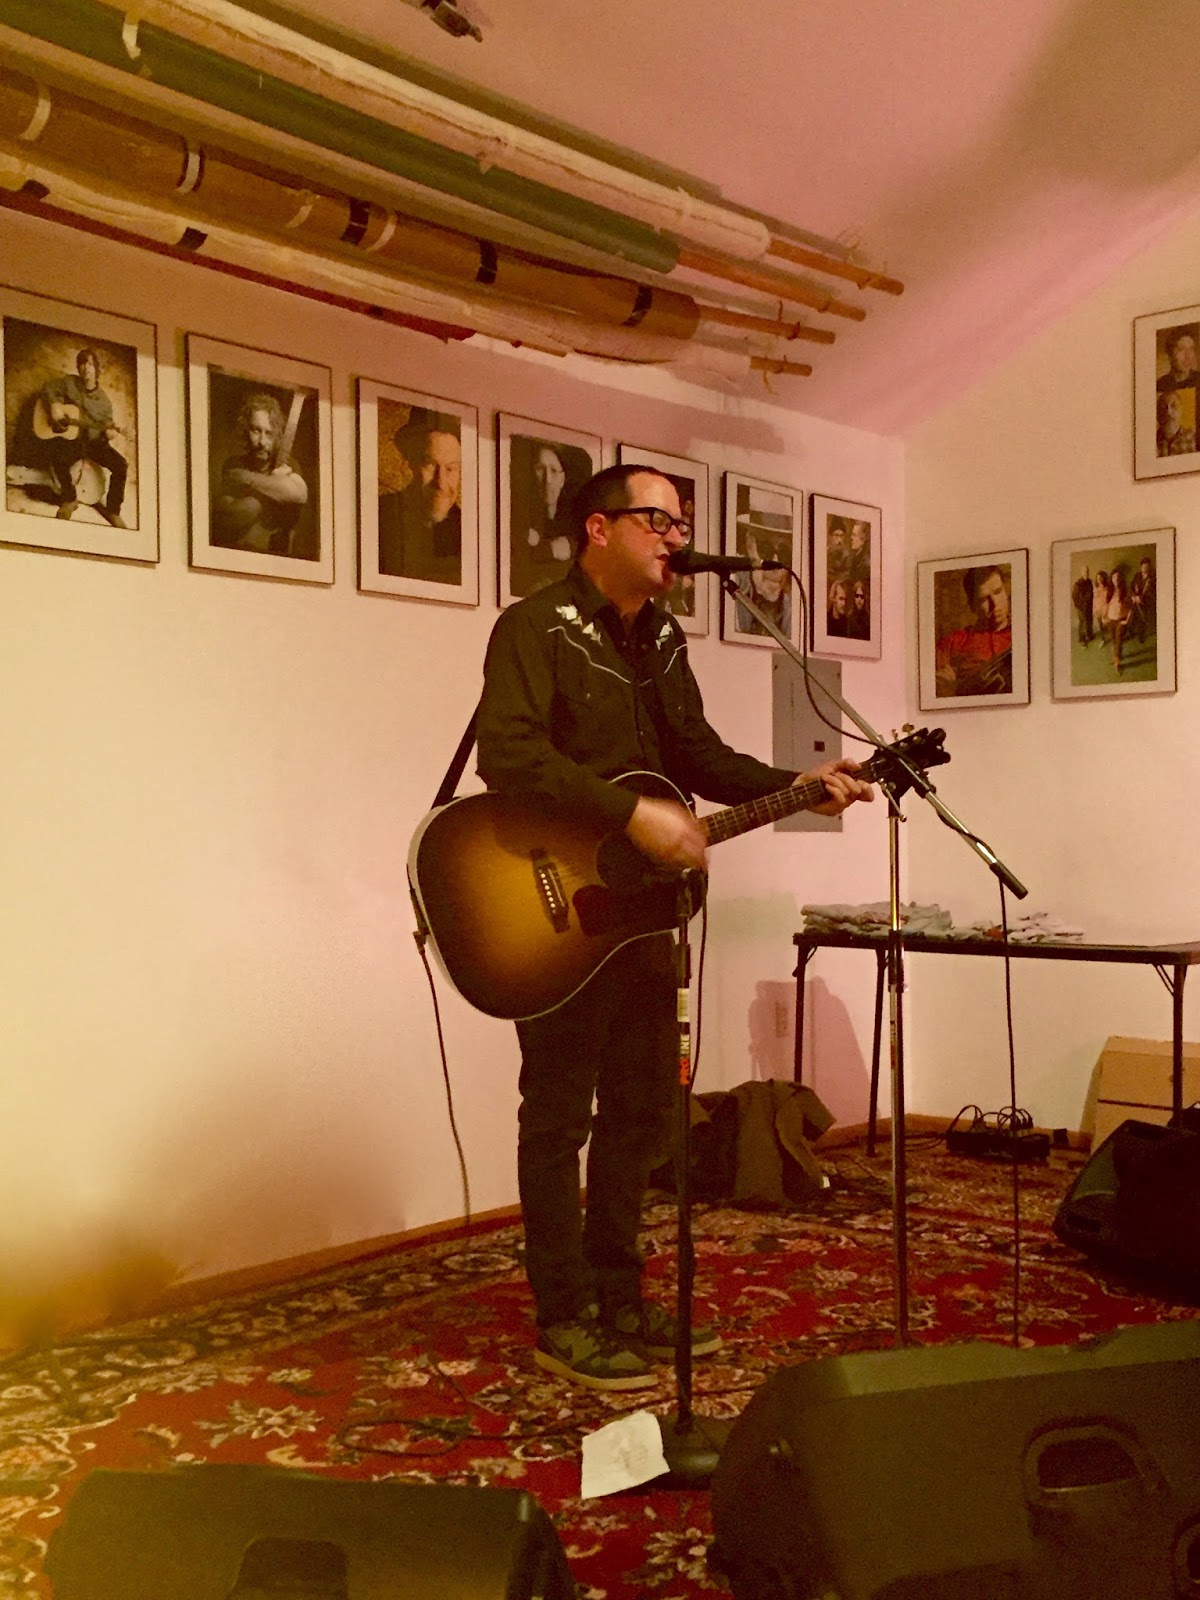 The Thunderbird Ranch Ramble: The Hold Steady's Craig Finn Shares